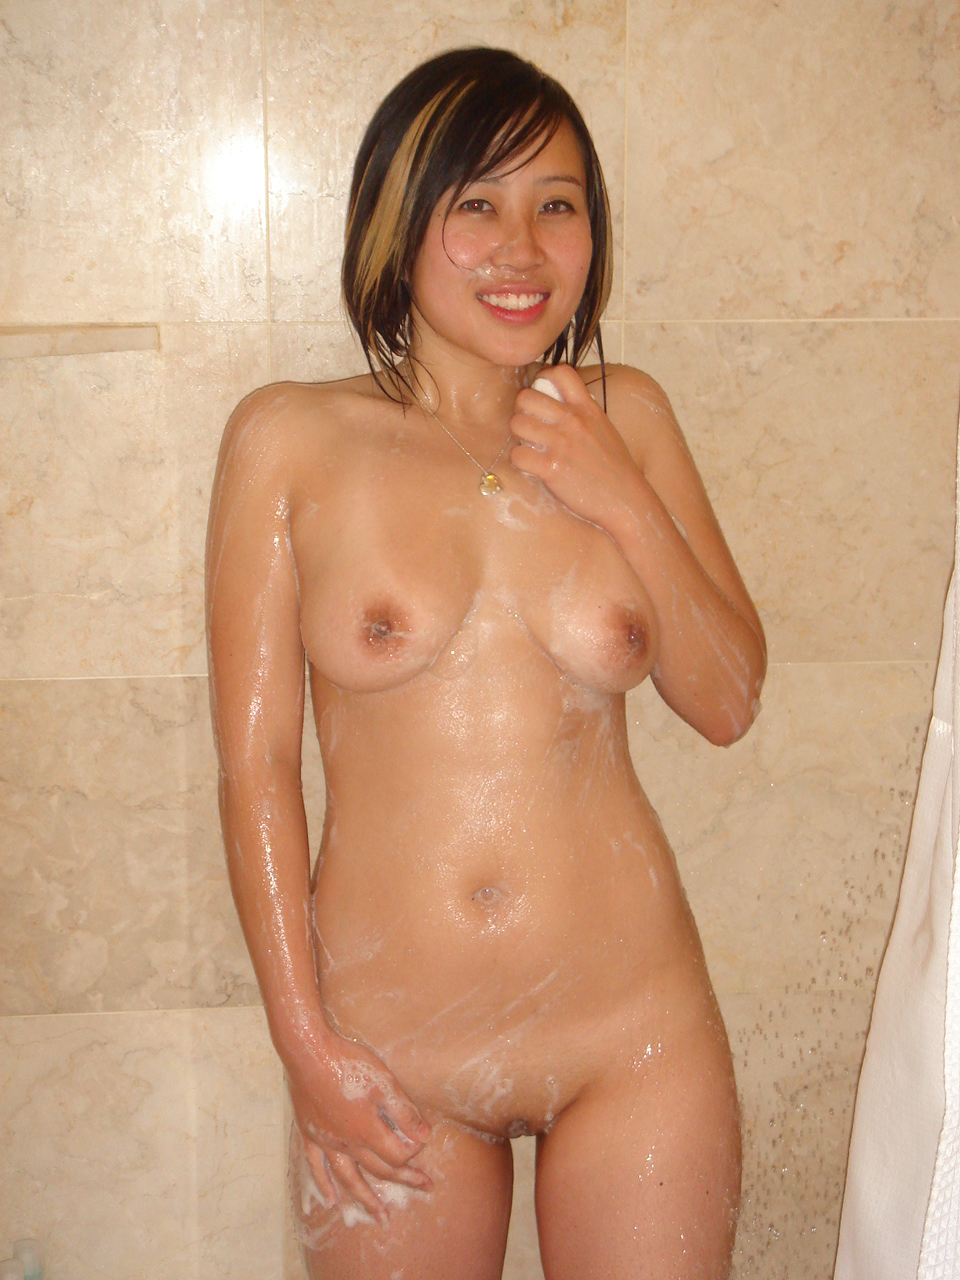 Going away party with cute Filipina GF